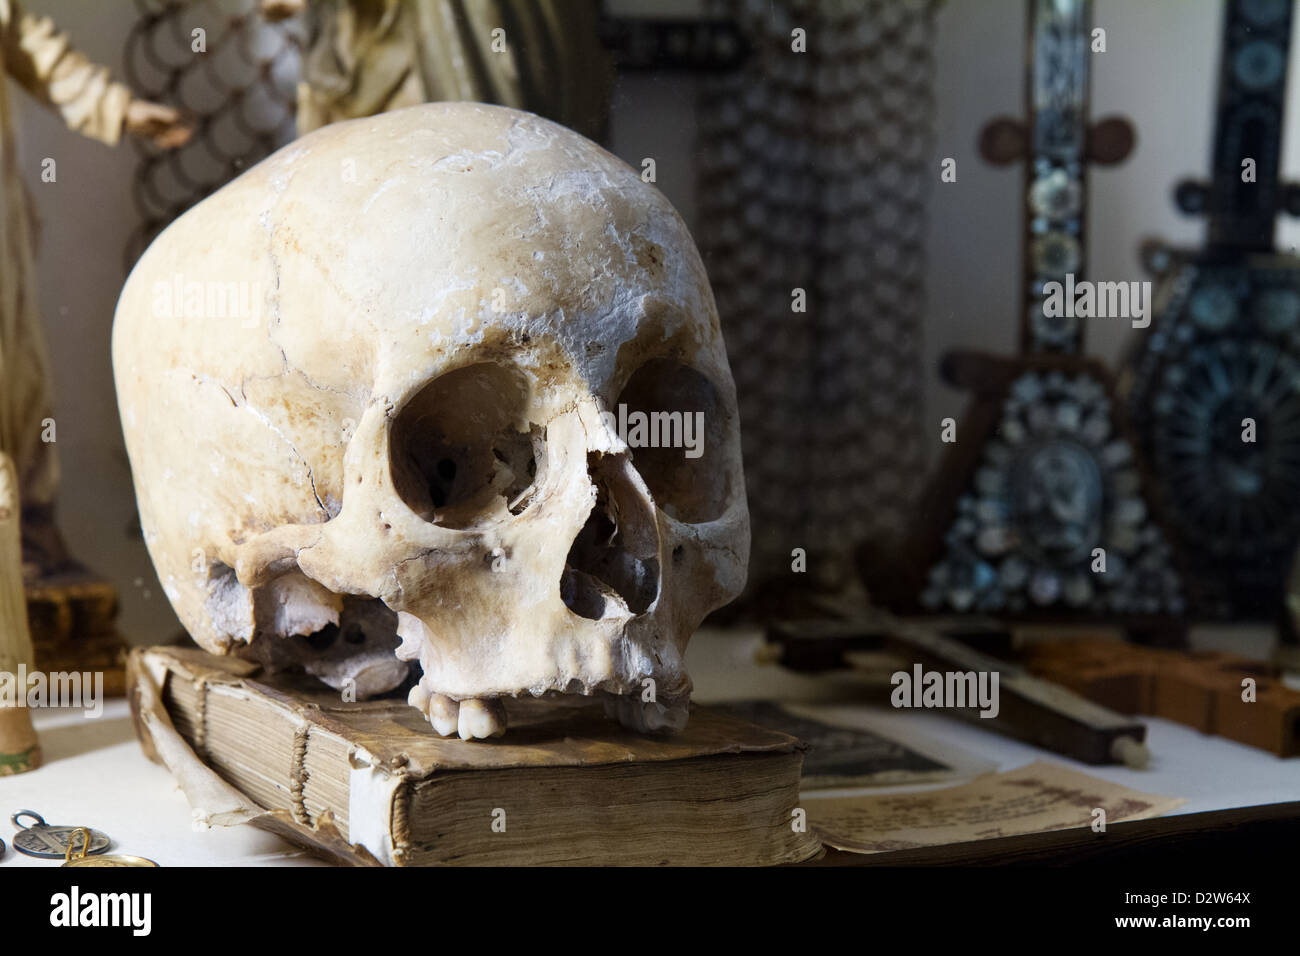 Skull on a book at the Royal Carthusian Monastery (Real Cartuja), Valldemossa, Majorca, Spain. - Stock Image